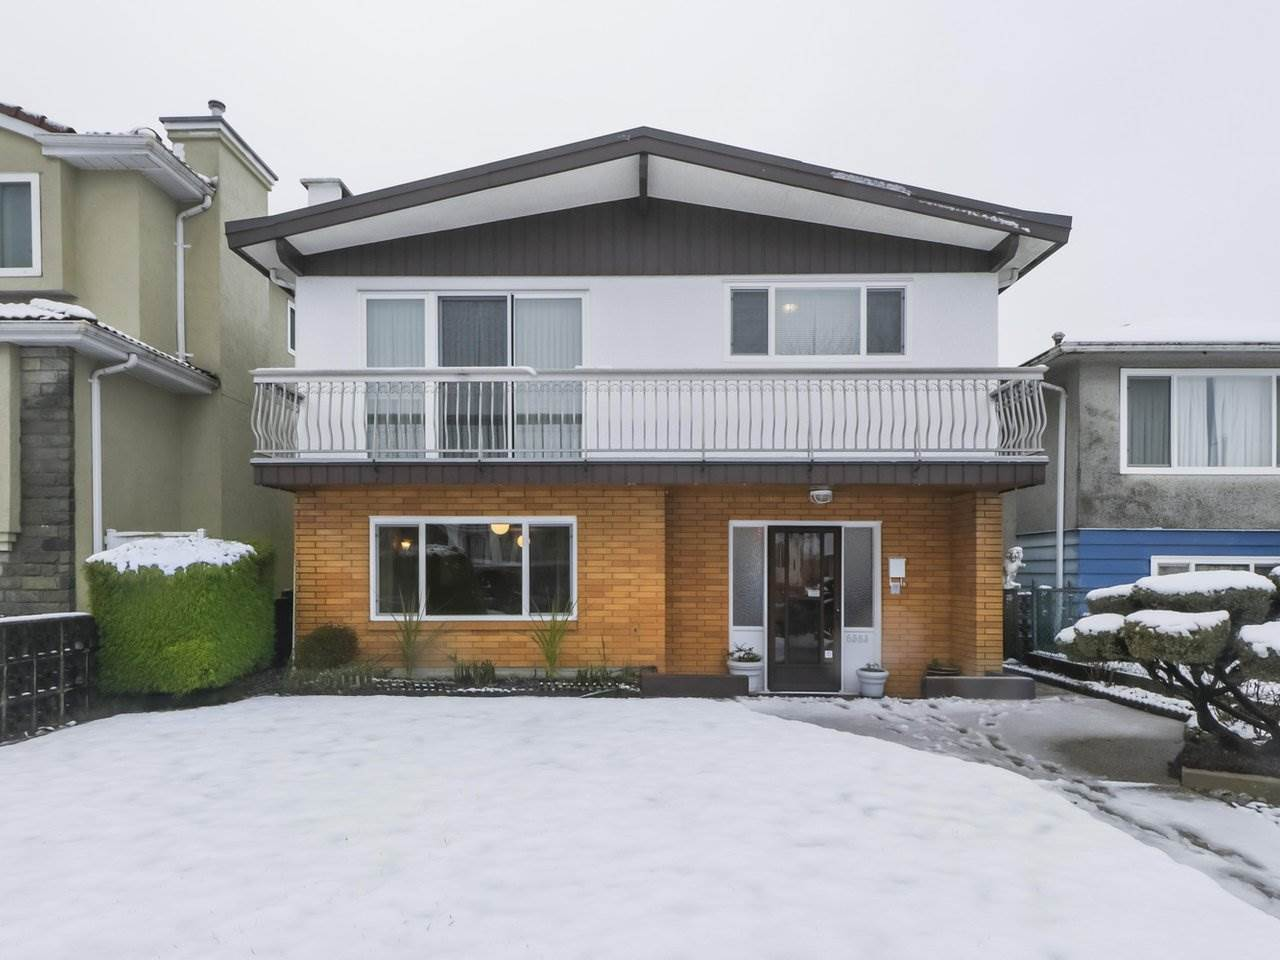 For Sale: 6583 Clarendon Street, Vancouver, BC | 4 Bed, 3 Bath House for $1699000.